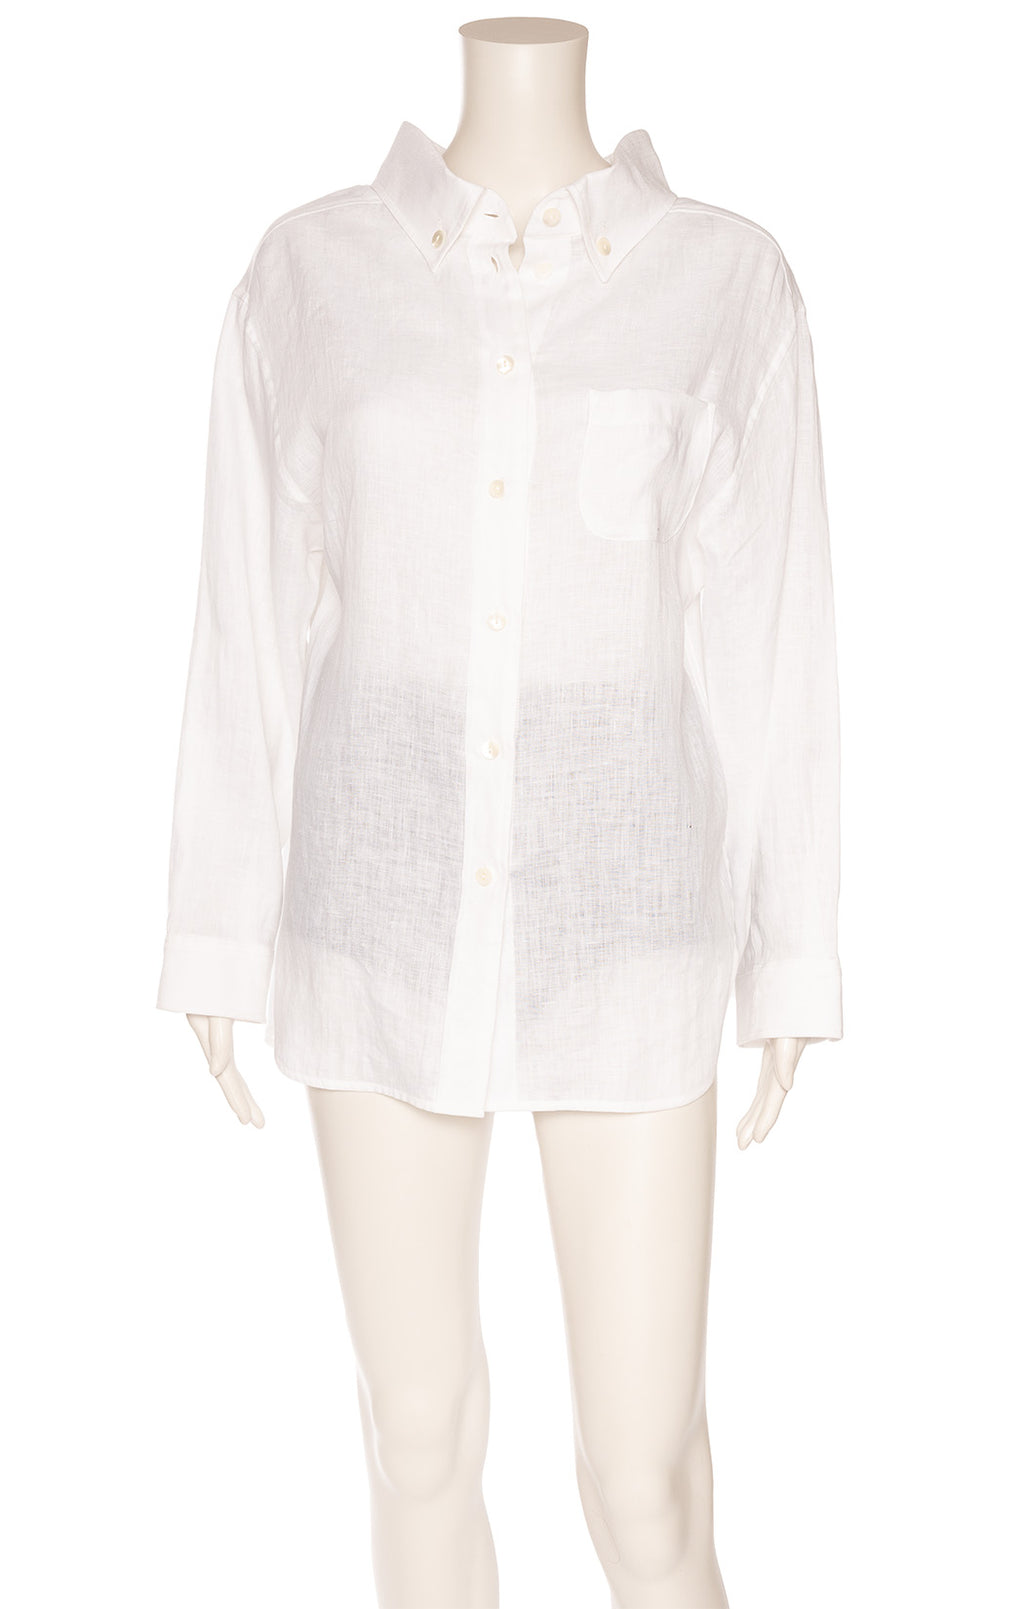 EMPORIO ARMANI Shirt Size: IT 42 (comparable to US 4-6)